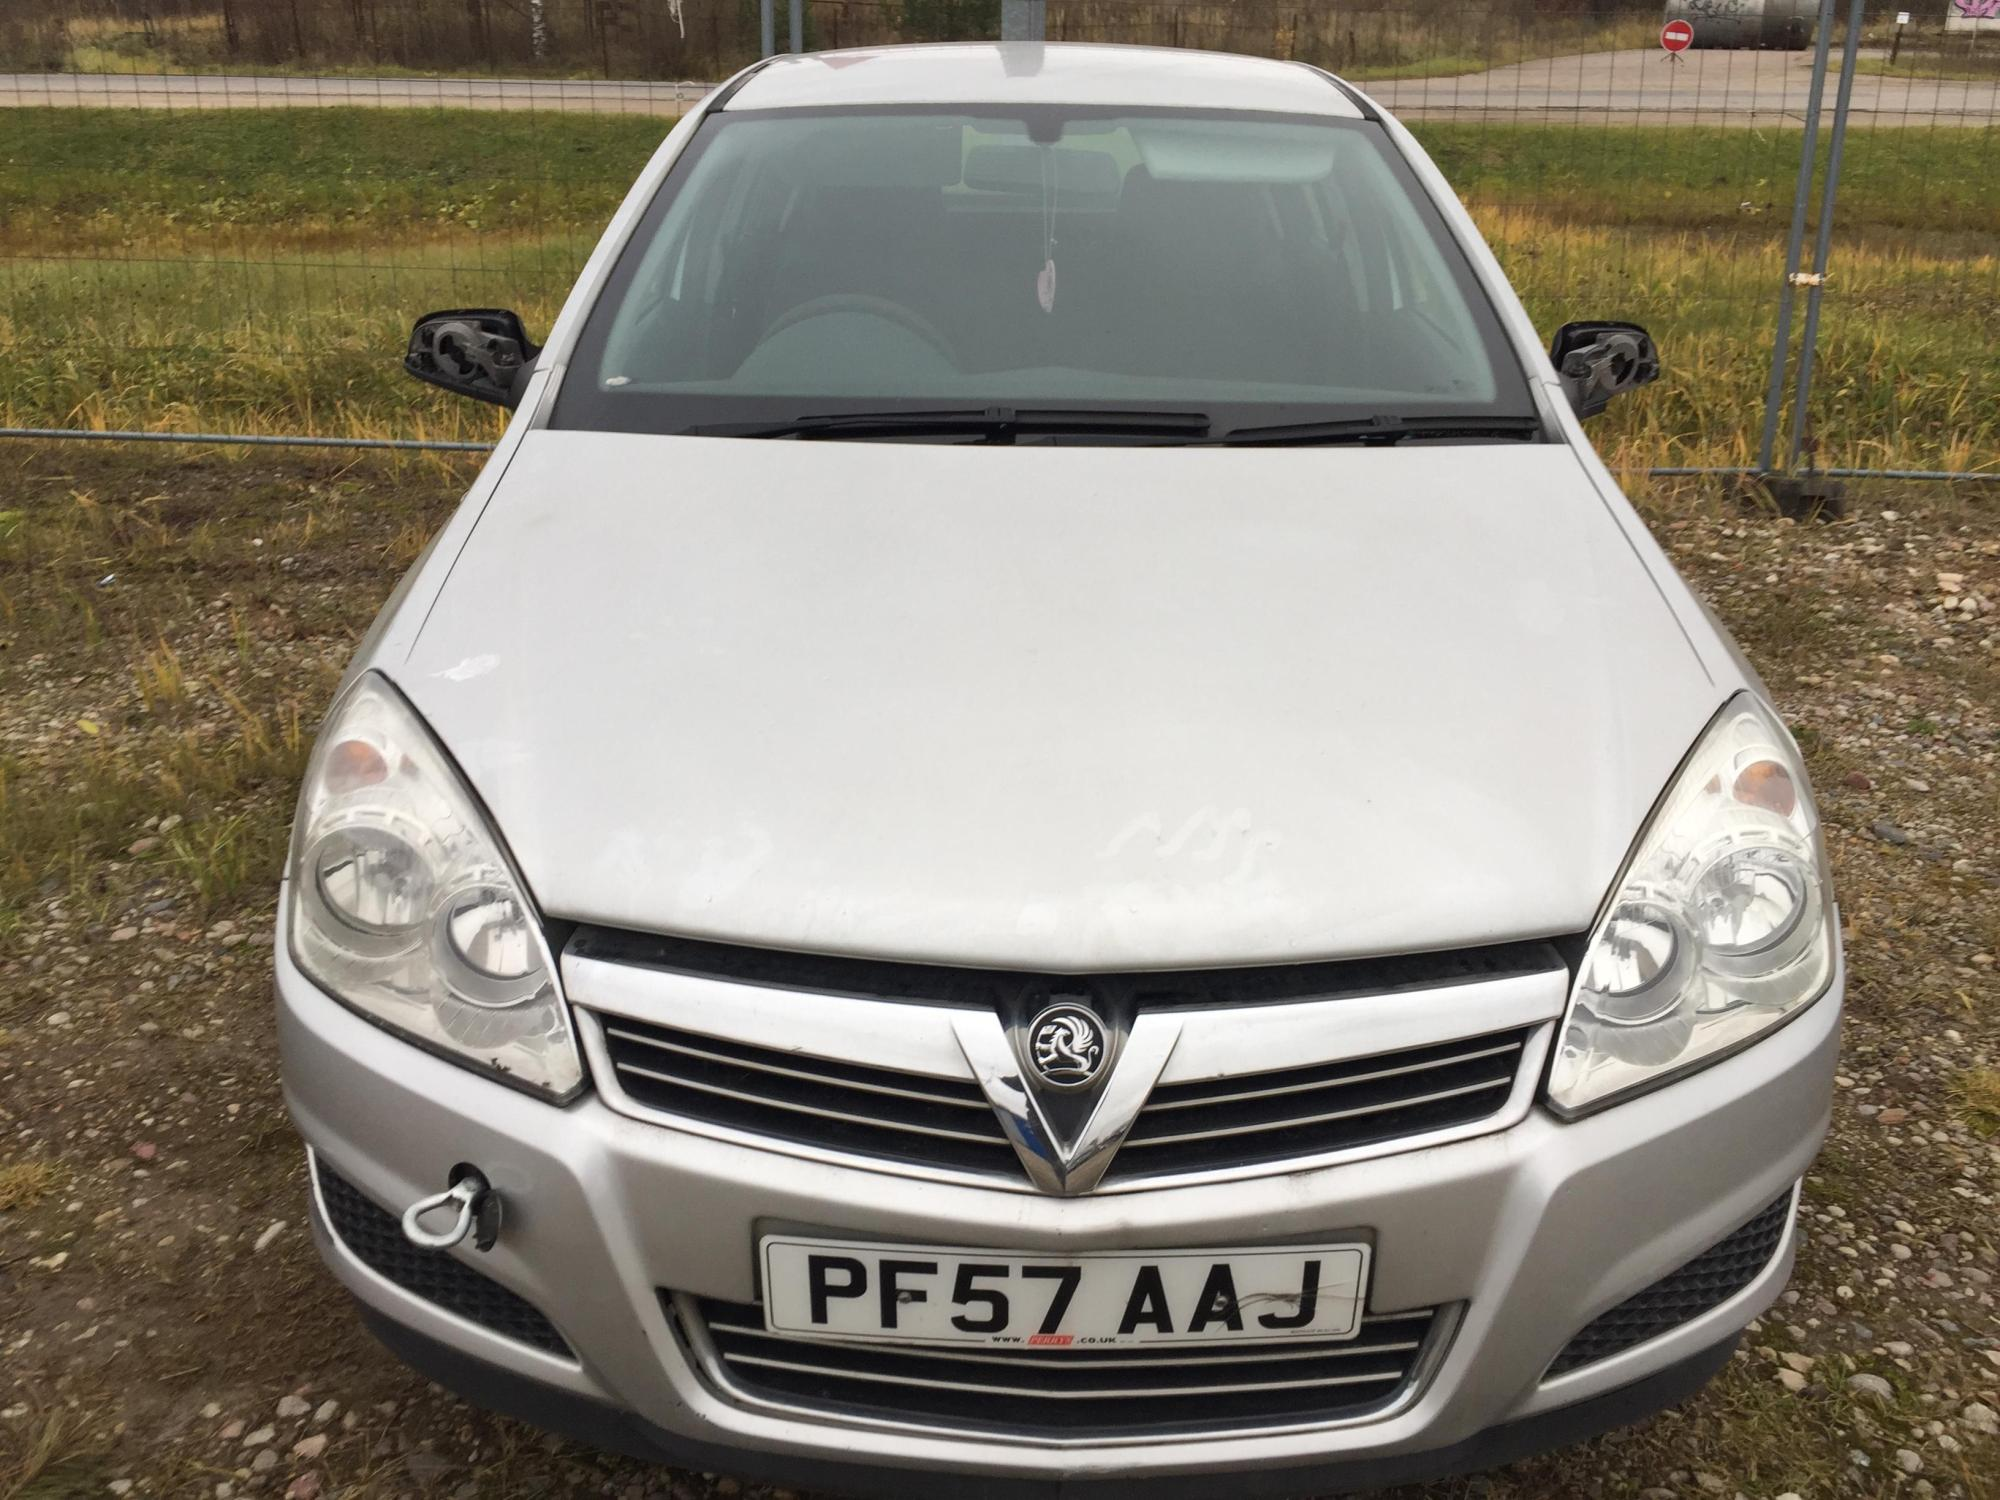 hight resolution of foto 2 opel astra astra h 2004 03 2009 12 2007 petrol